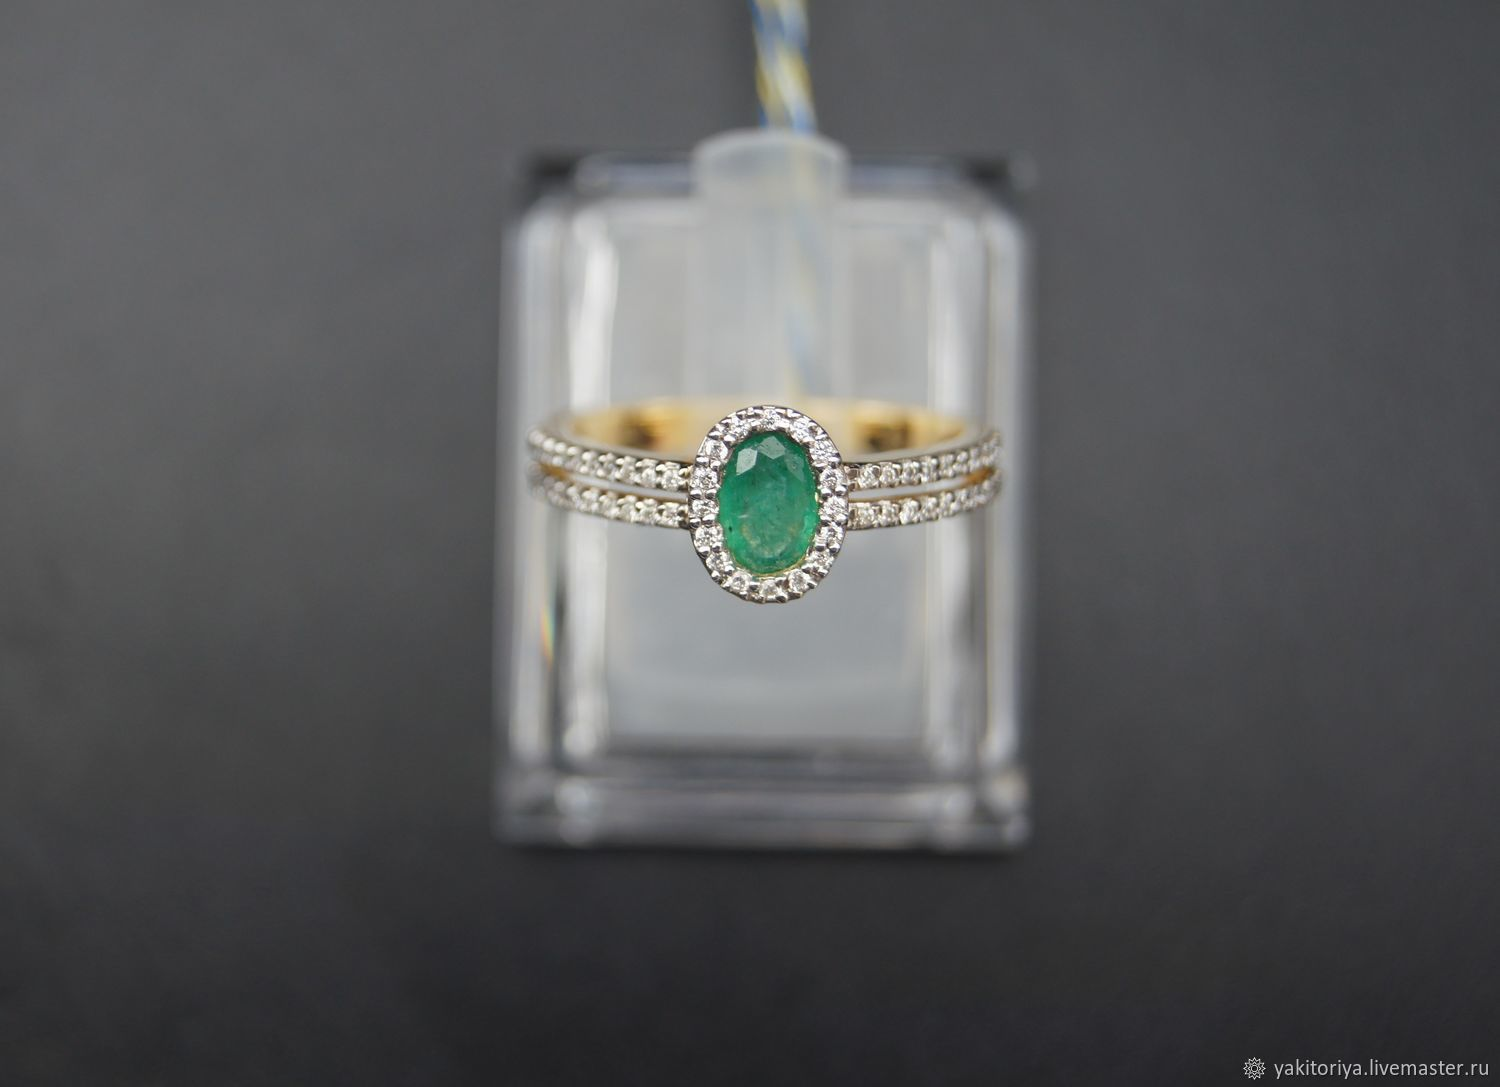 585 gold ring with emerald and diamonds, Rings, Moscow,  Фото №1